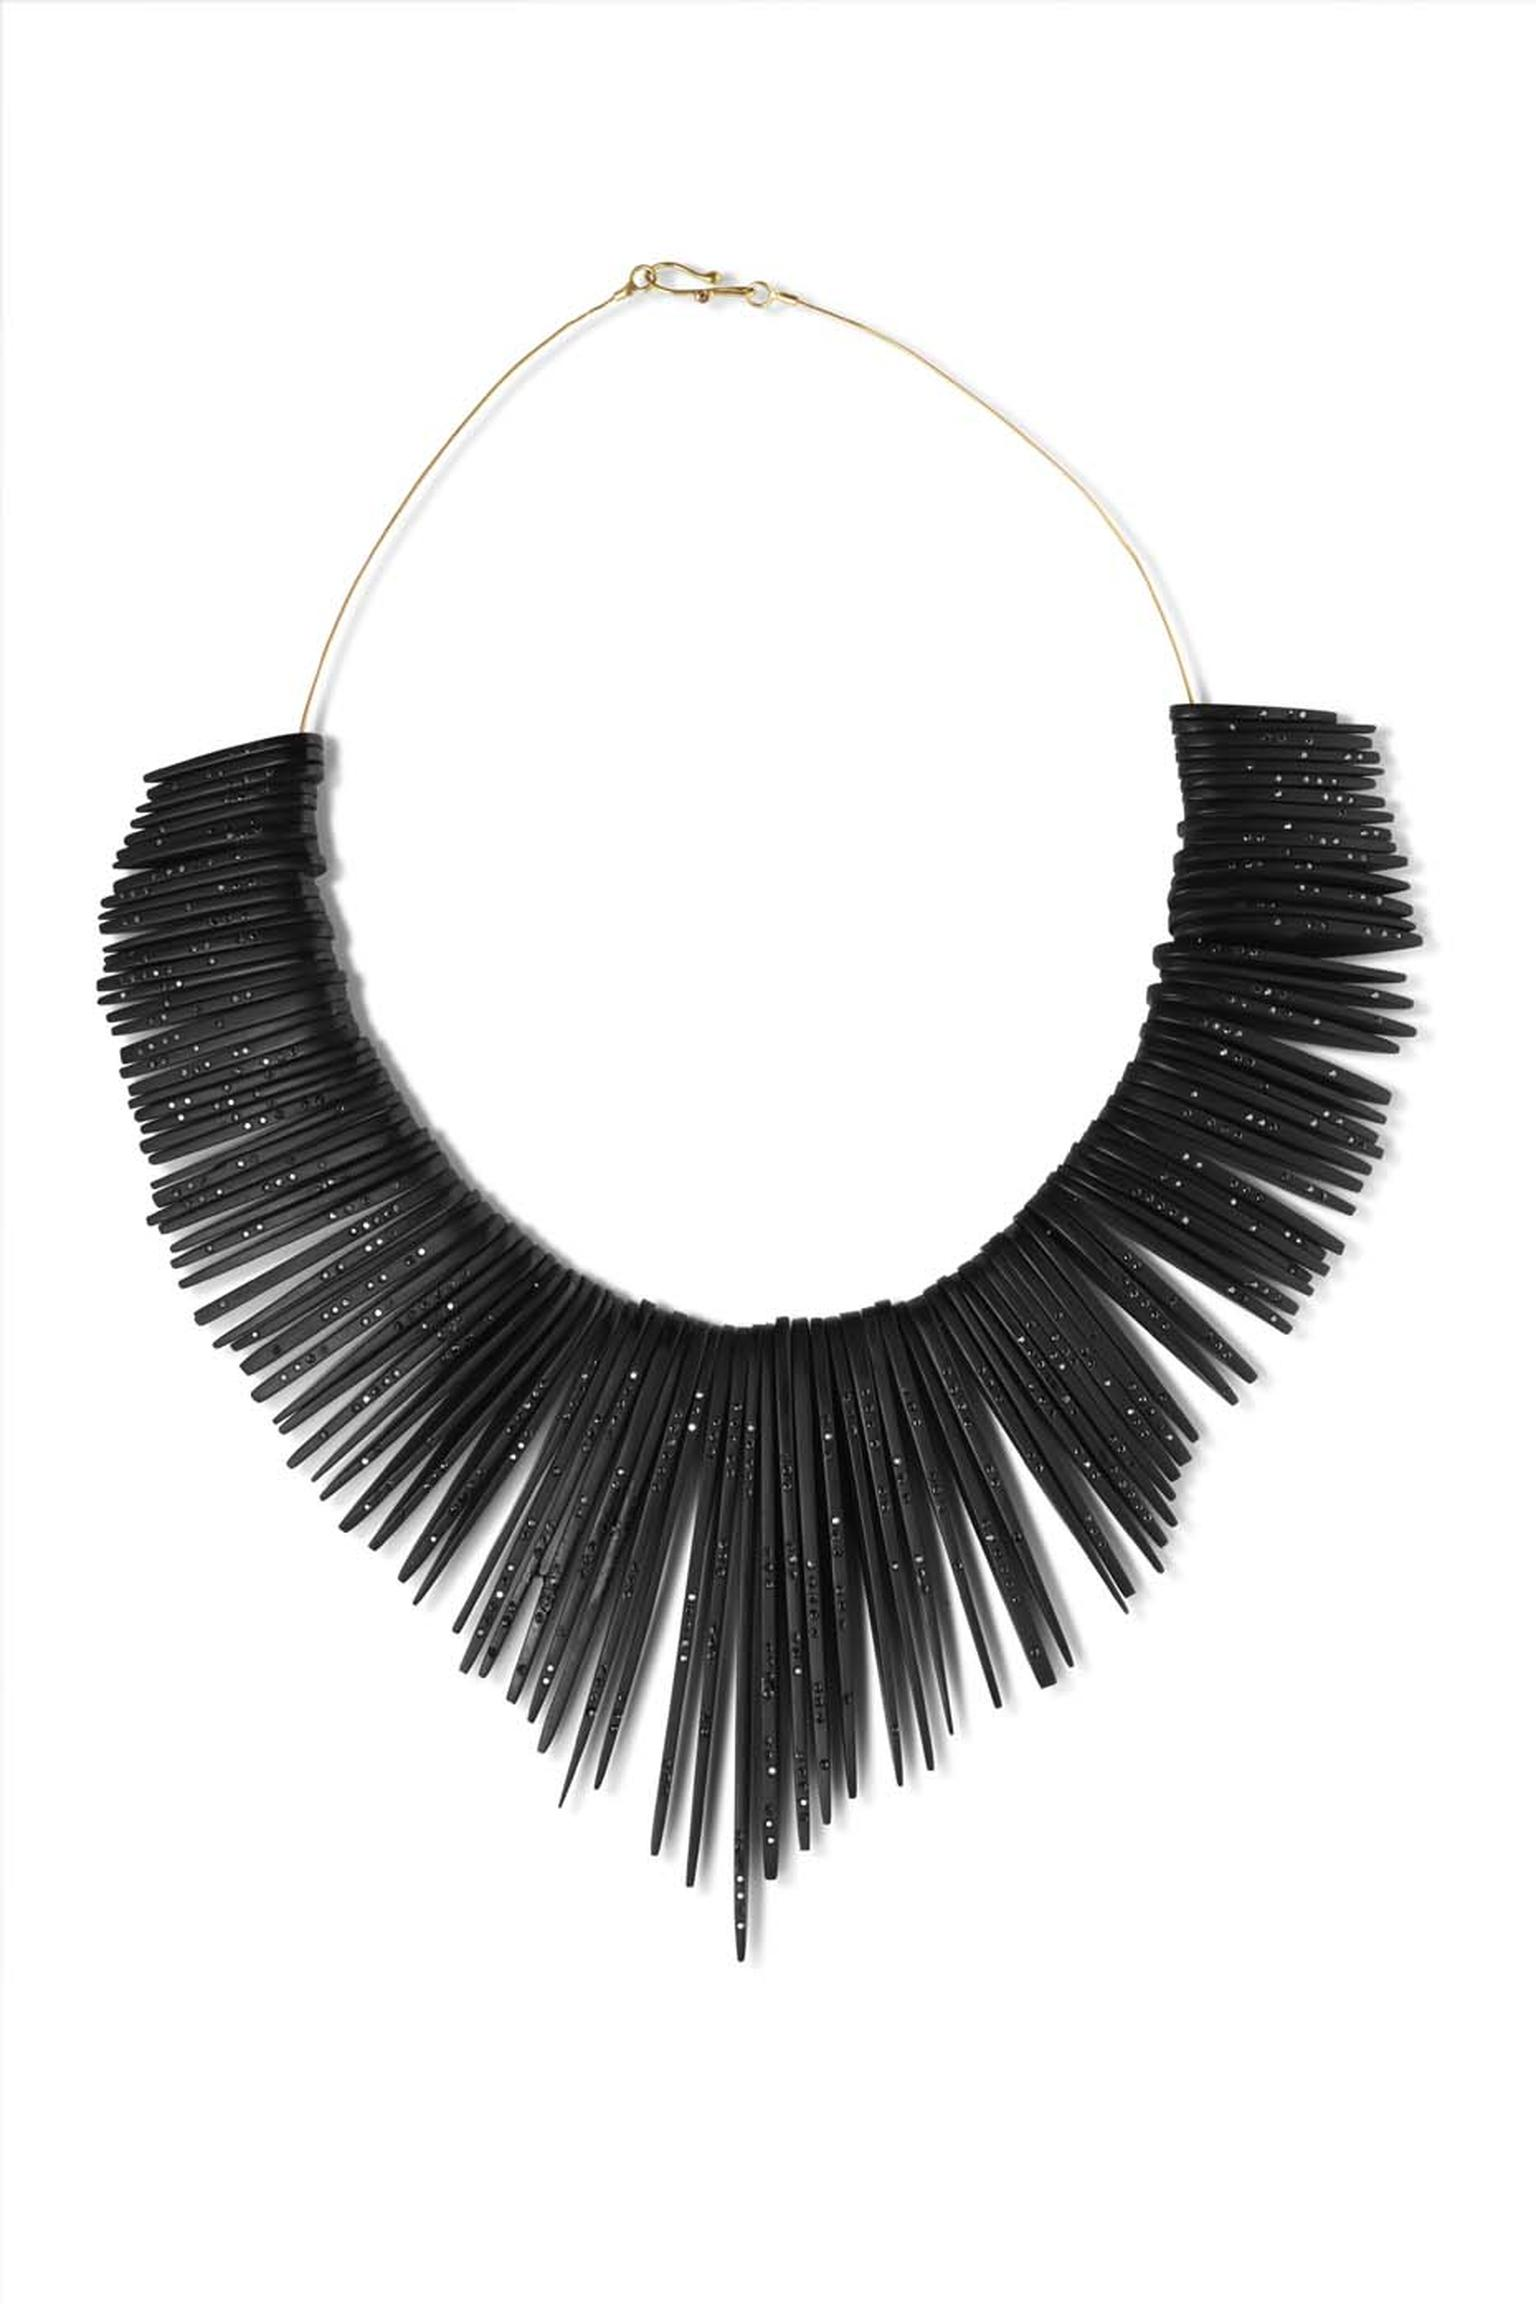 Jacqueline Cullen limited edition hand-cut Whitby jet feather collar.